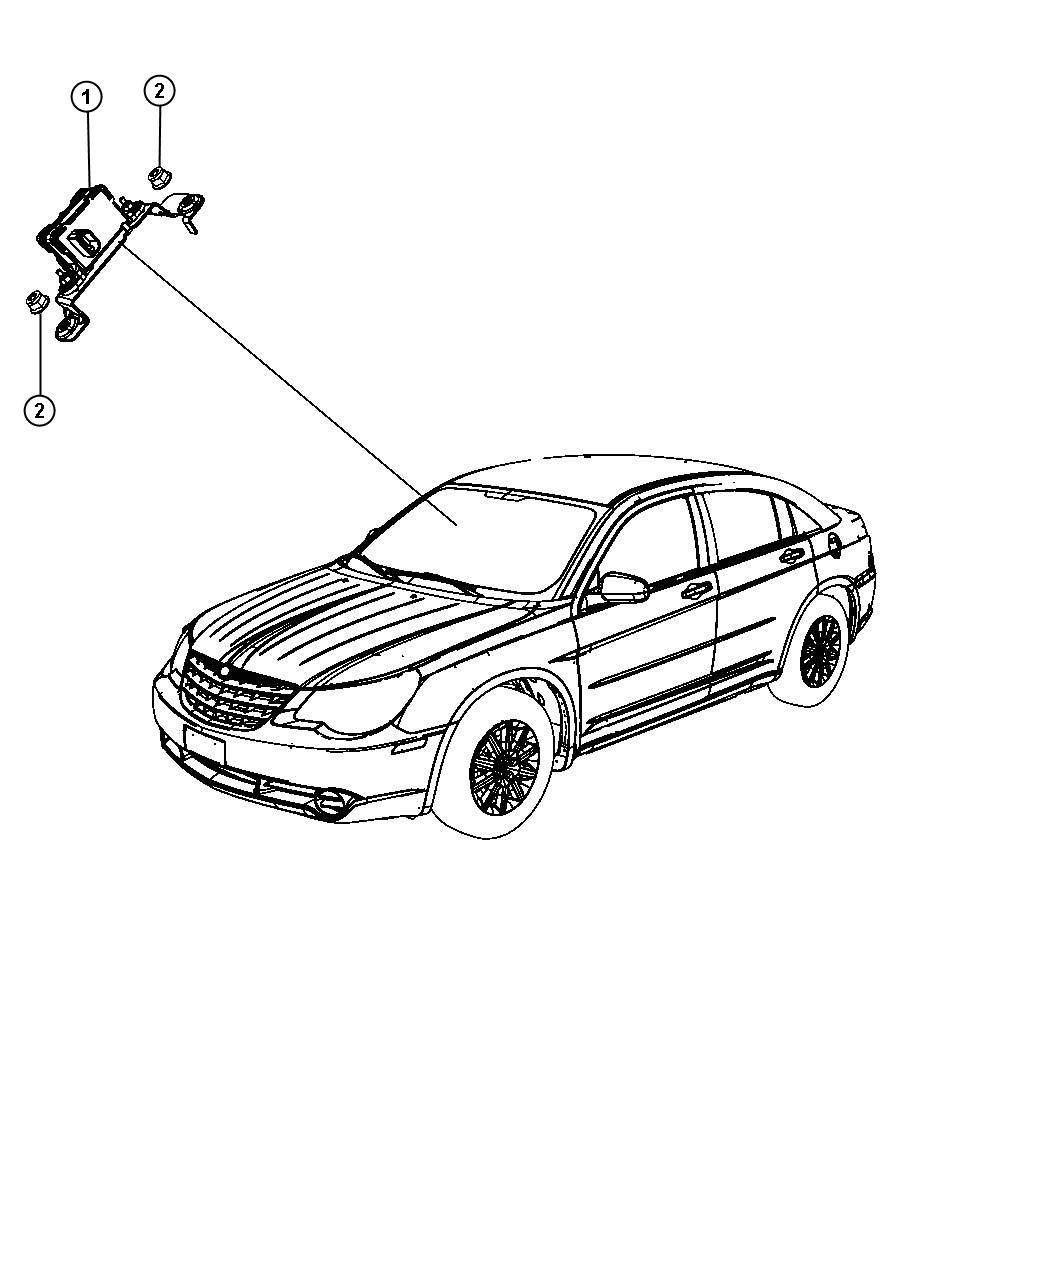 Chrysler 200 Sensor Dynamics Used For Lateral Acceleration And Yaw Rate Electronic